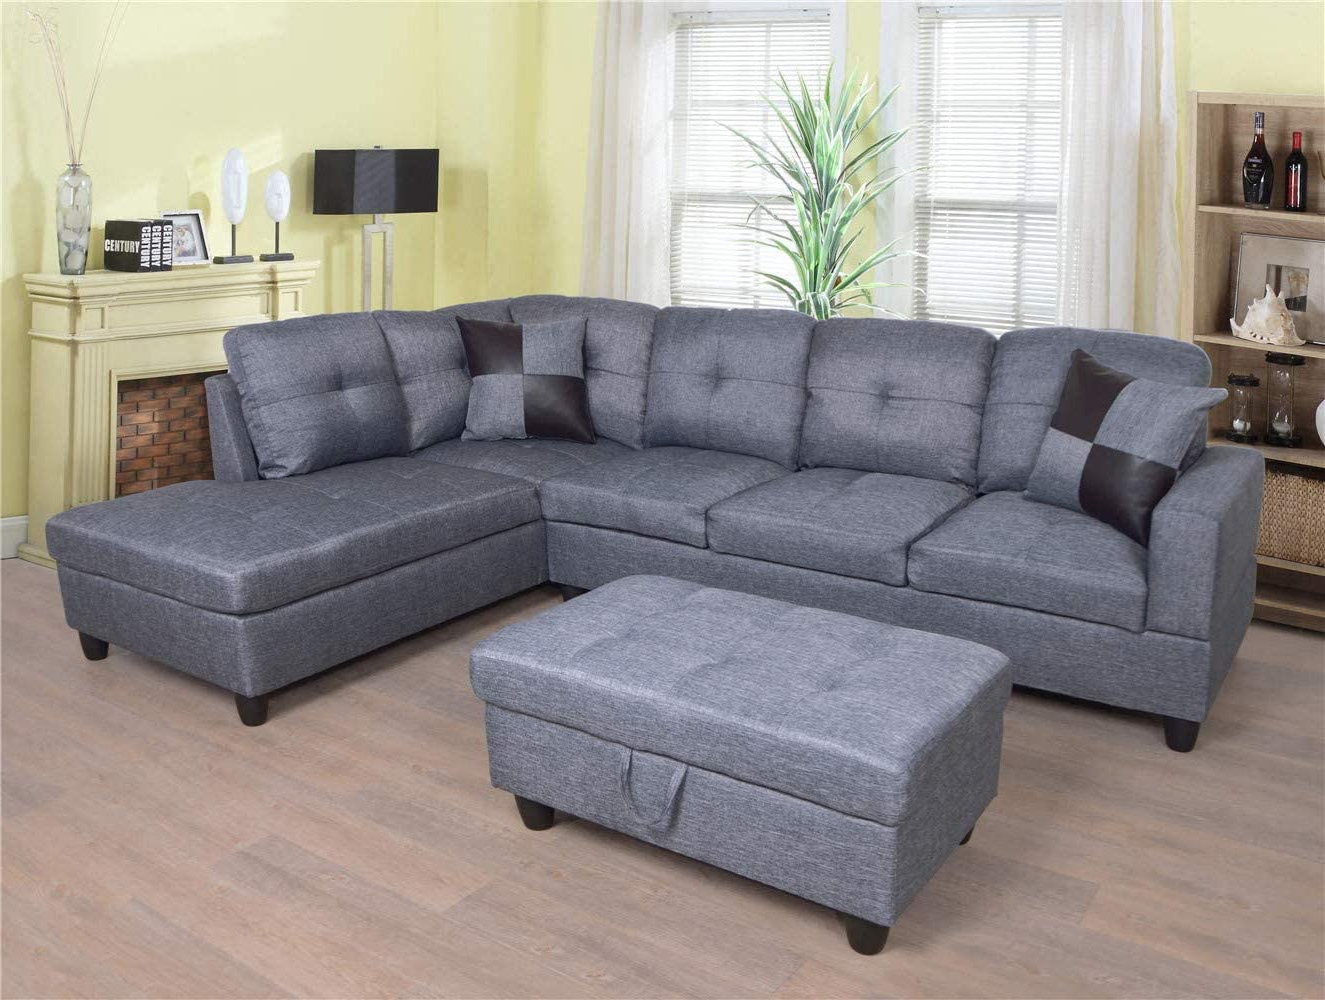 Ponliving Furniture 3 Pcpiece Sectional Sofa Couch Set, L With Newest Owego L Shaped Sectional Sofas (View 1 of 25)